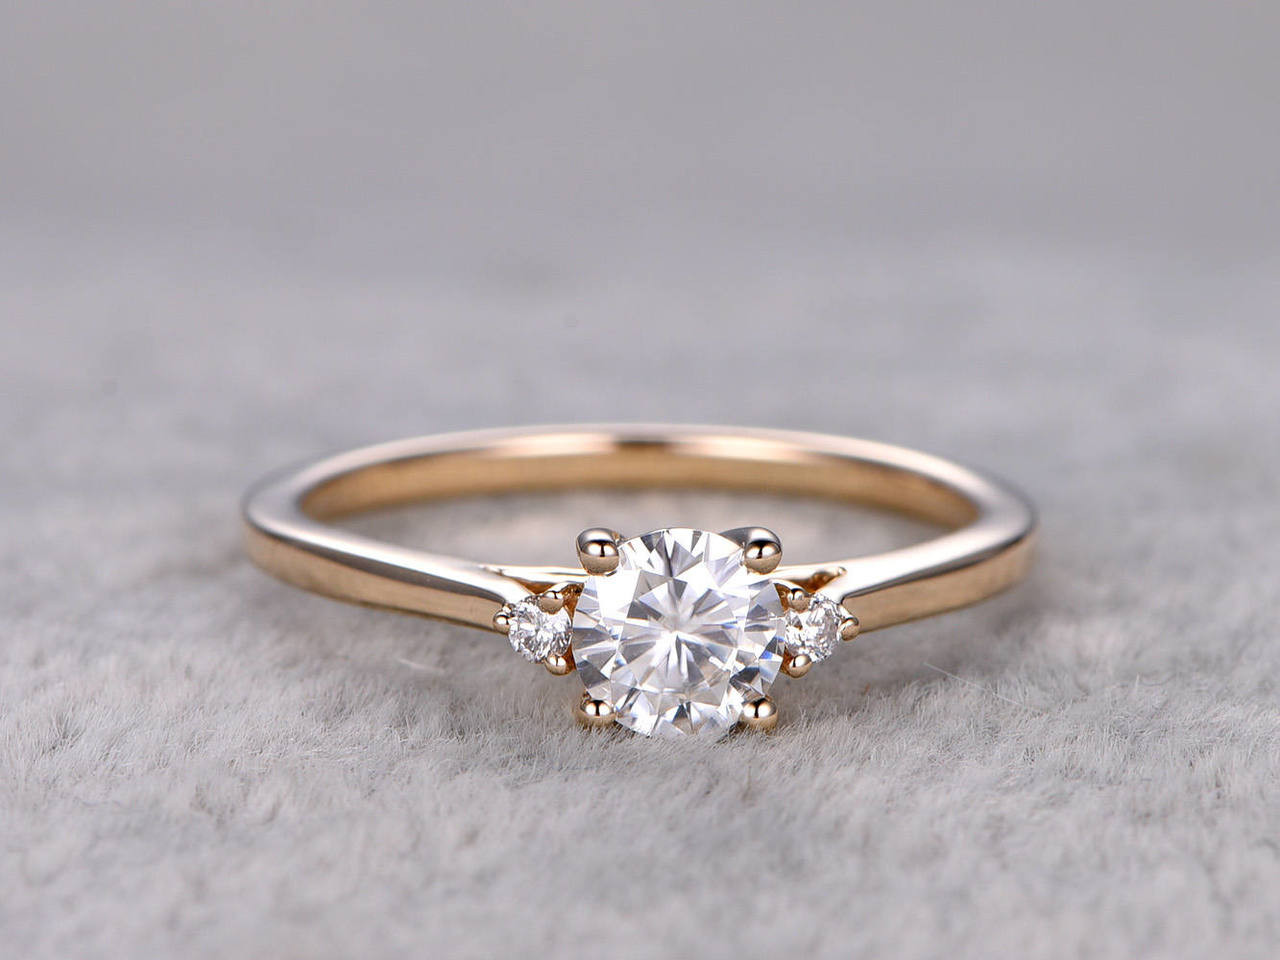 grey jewelry evergreen of engagement recycled rings friendly anueva gold carved wedding moissanite by in prong products earth diamond solitaire ring